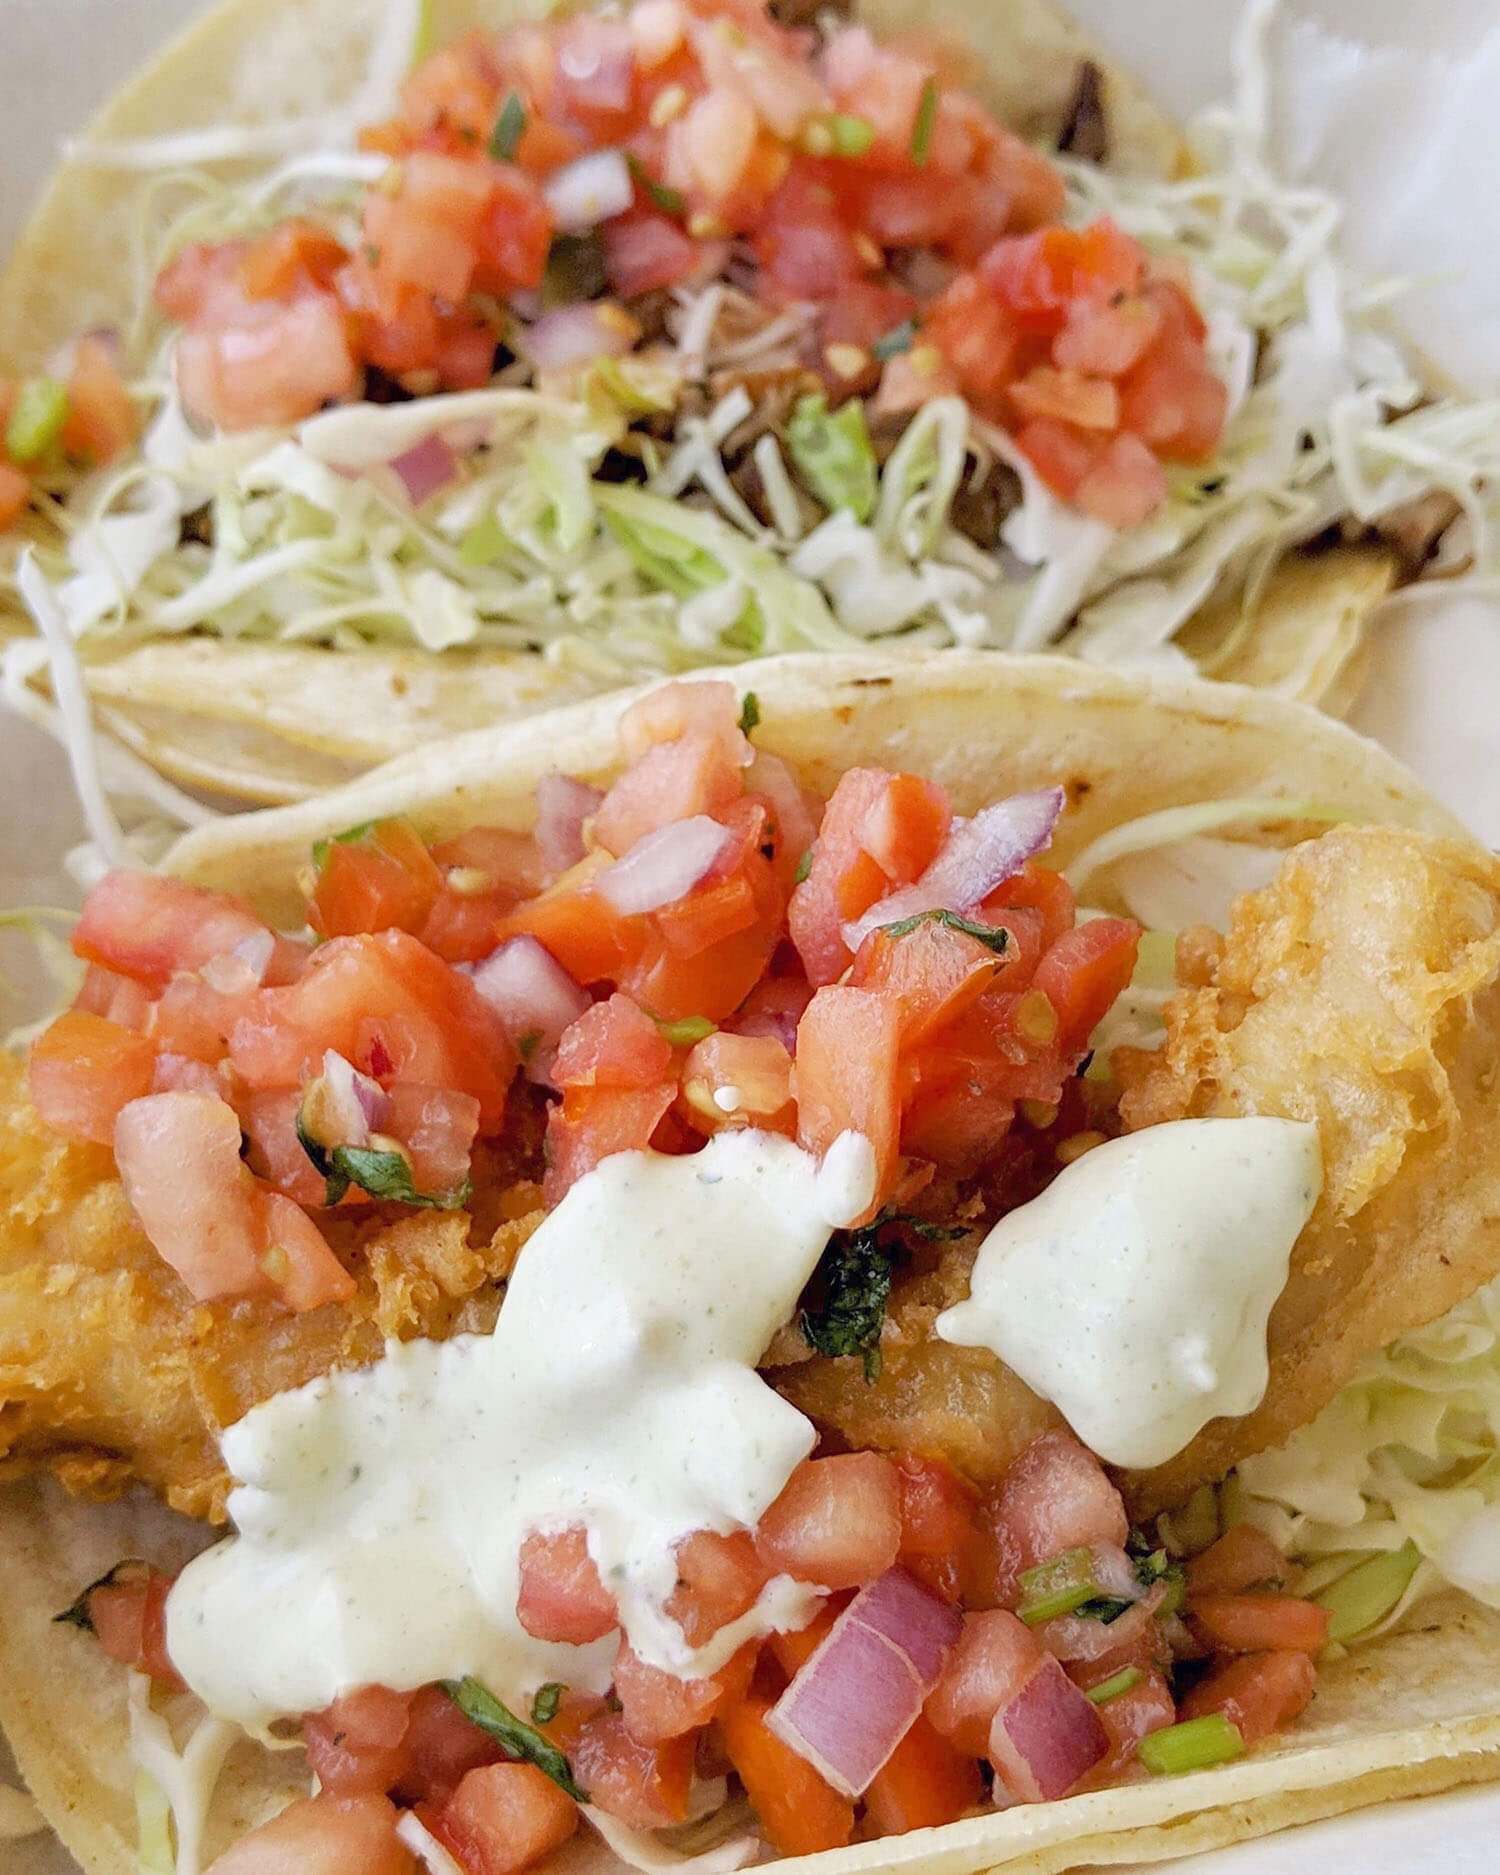 Fish and Pork Tacos Fish Market Maui Lahaina Kaanapali Food Travel Hawaii